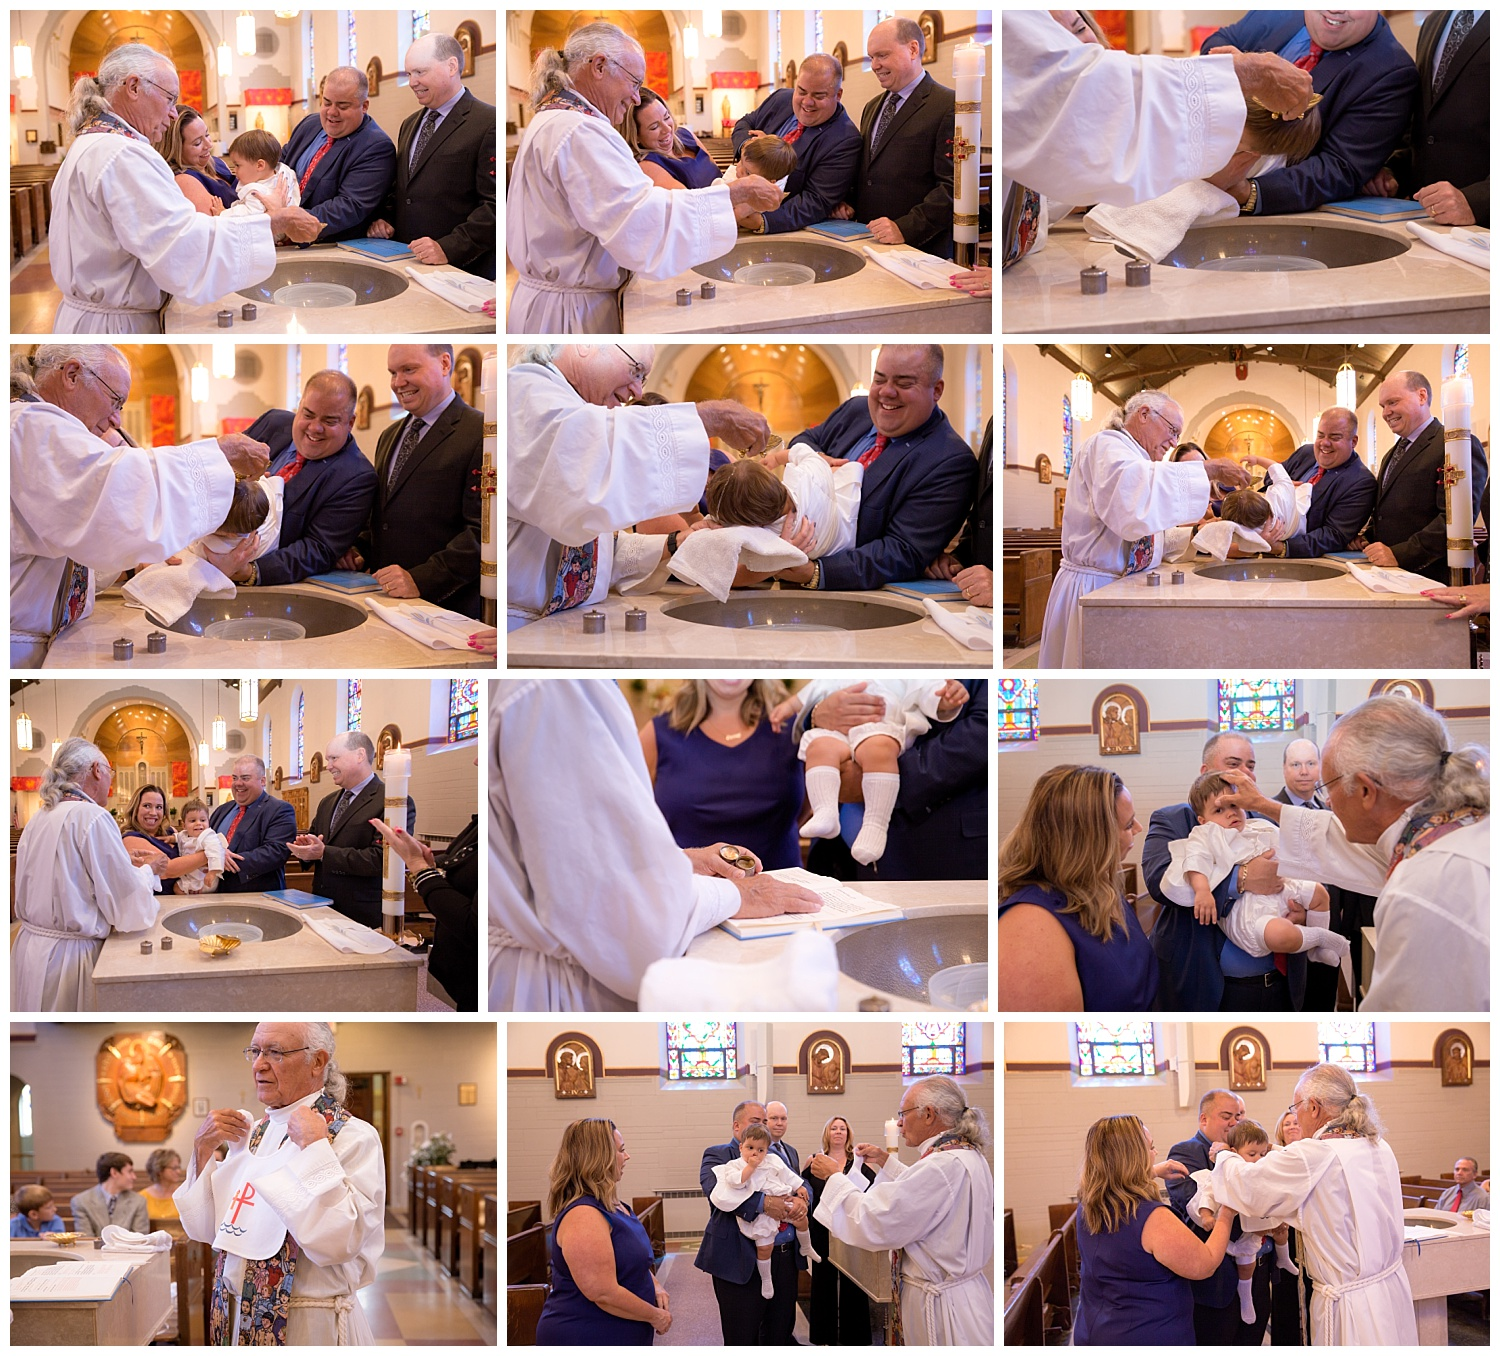 baby boy being baptism in holy water in haddonfield new jersey church